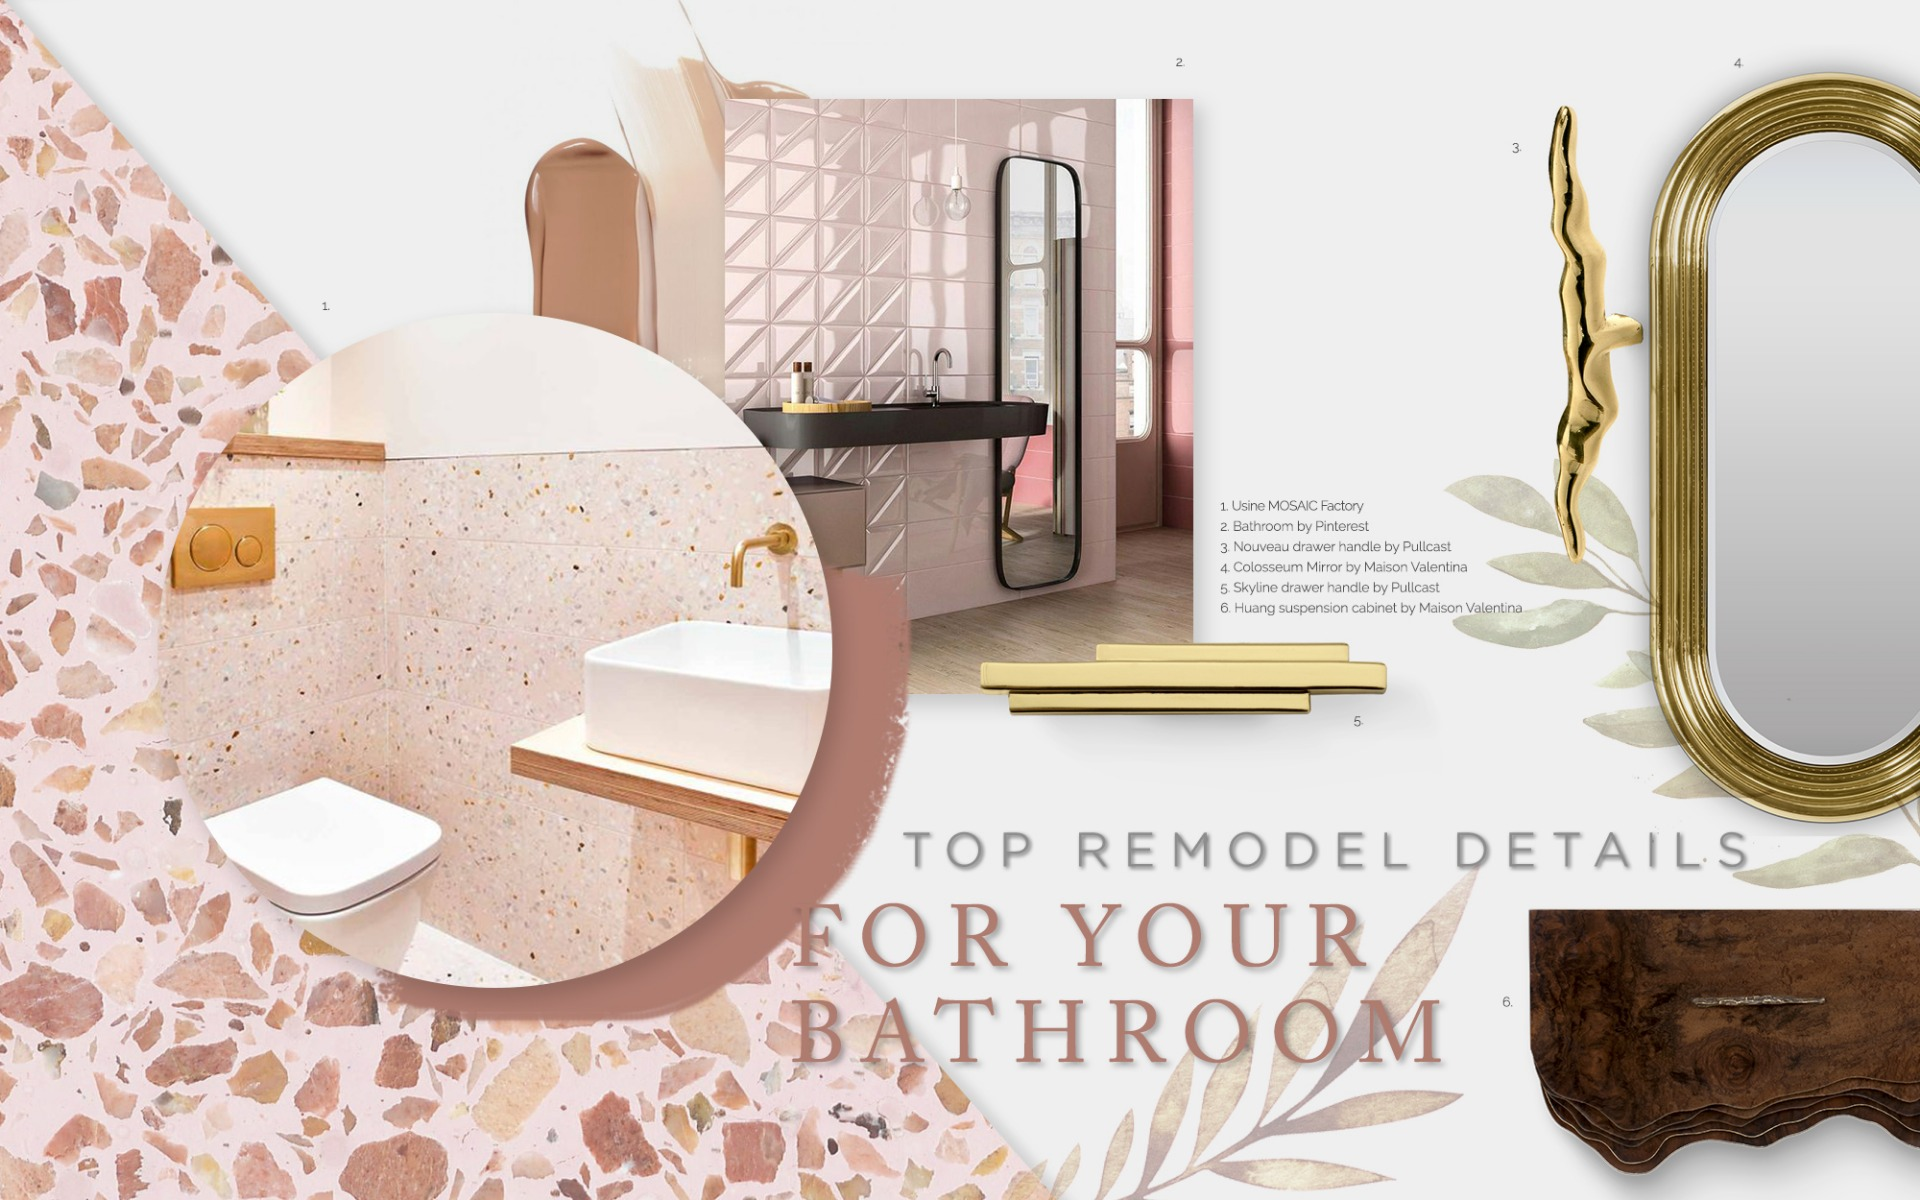 Bathroom Remodel Trends that Focus on Details bathroom remodel trends Bathroom Remodel Trends that Focus on Details moodboard